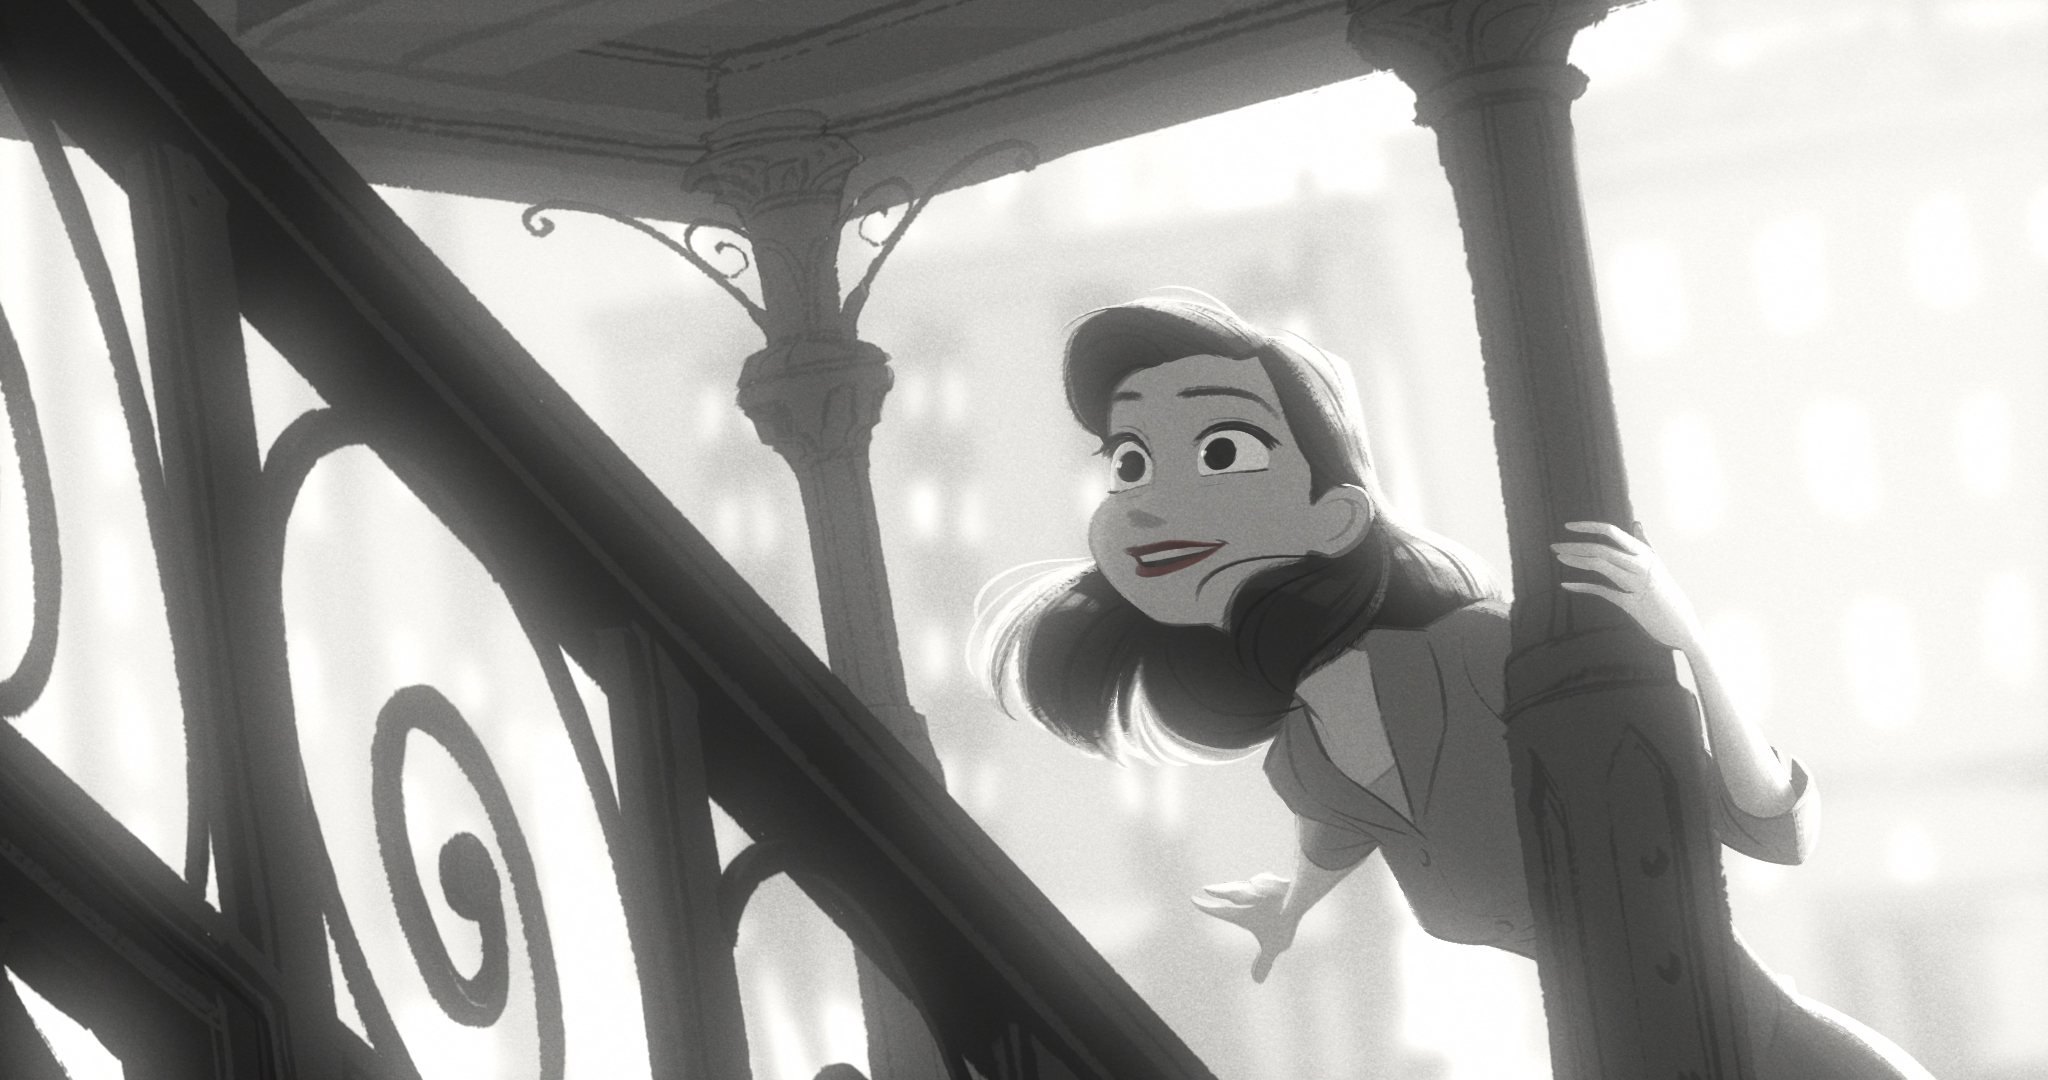 &quot;PAPERMAN&quot;